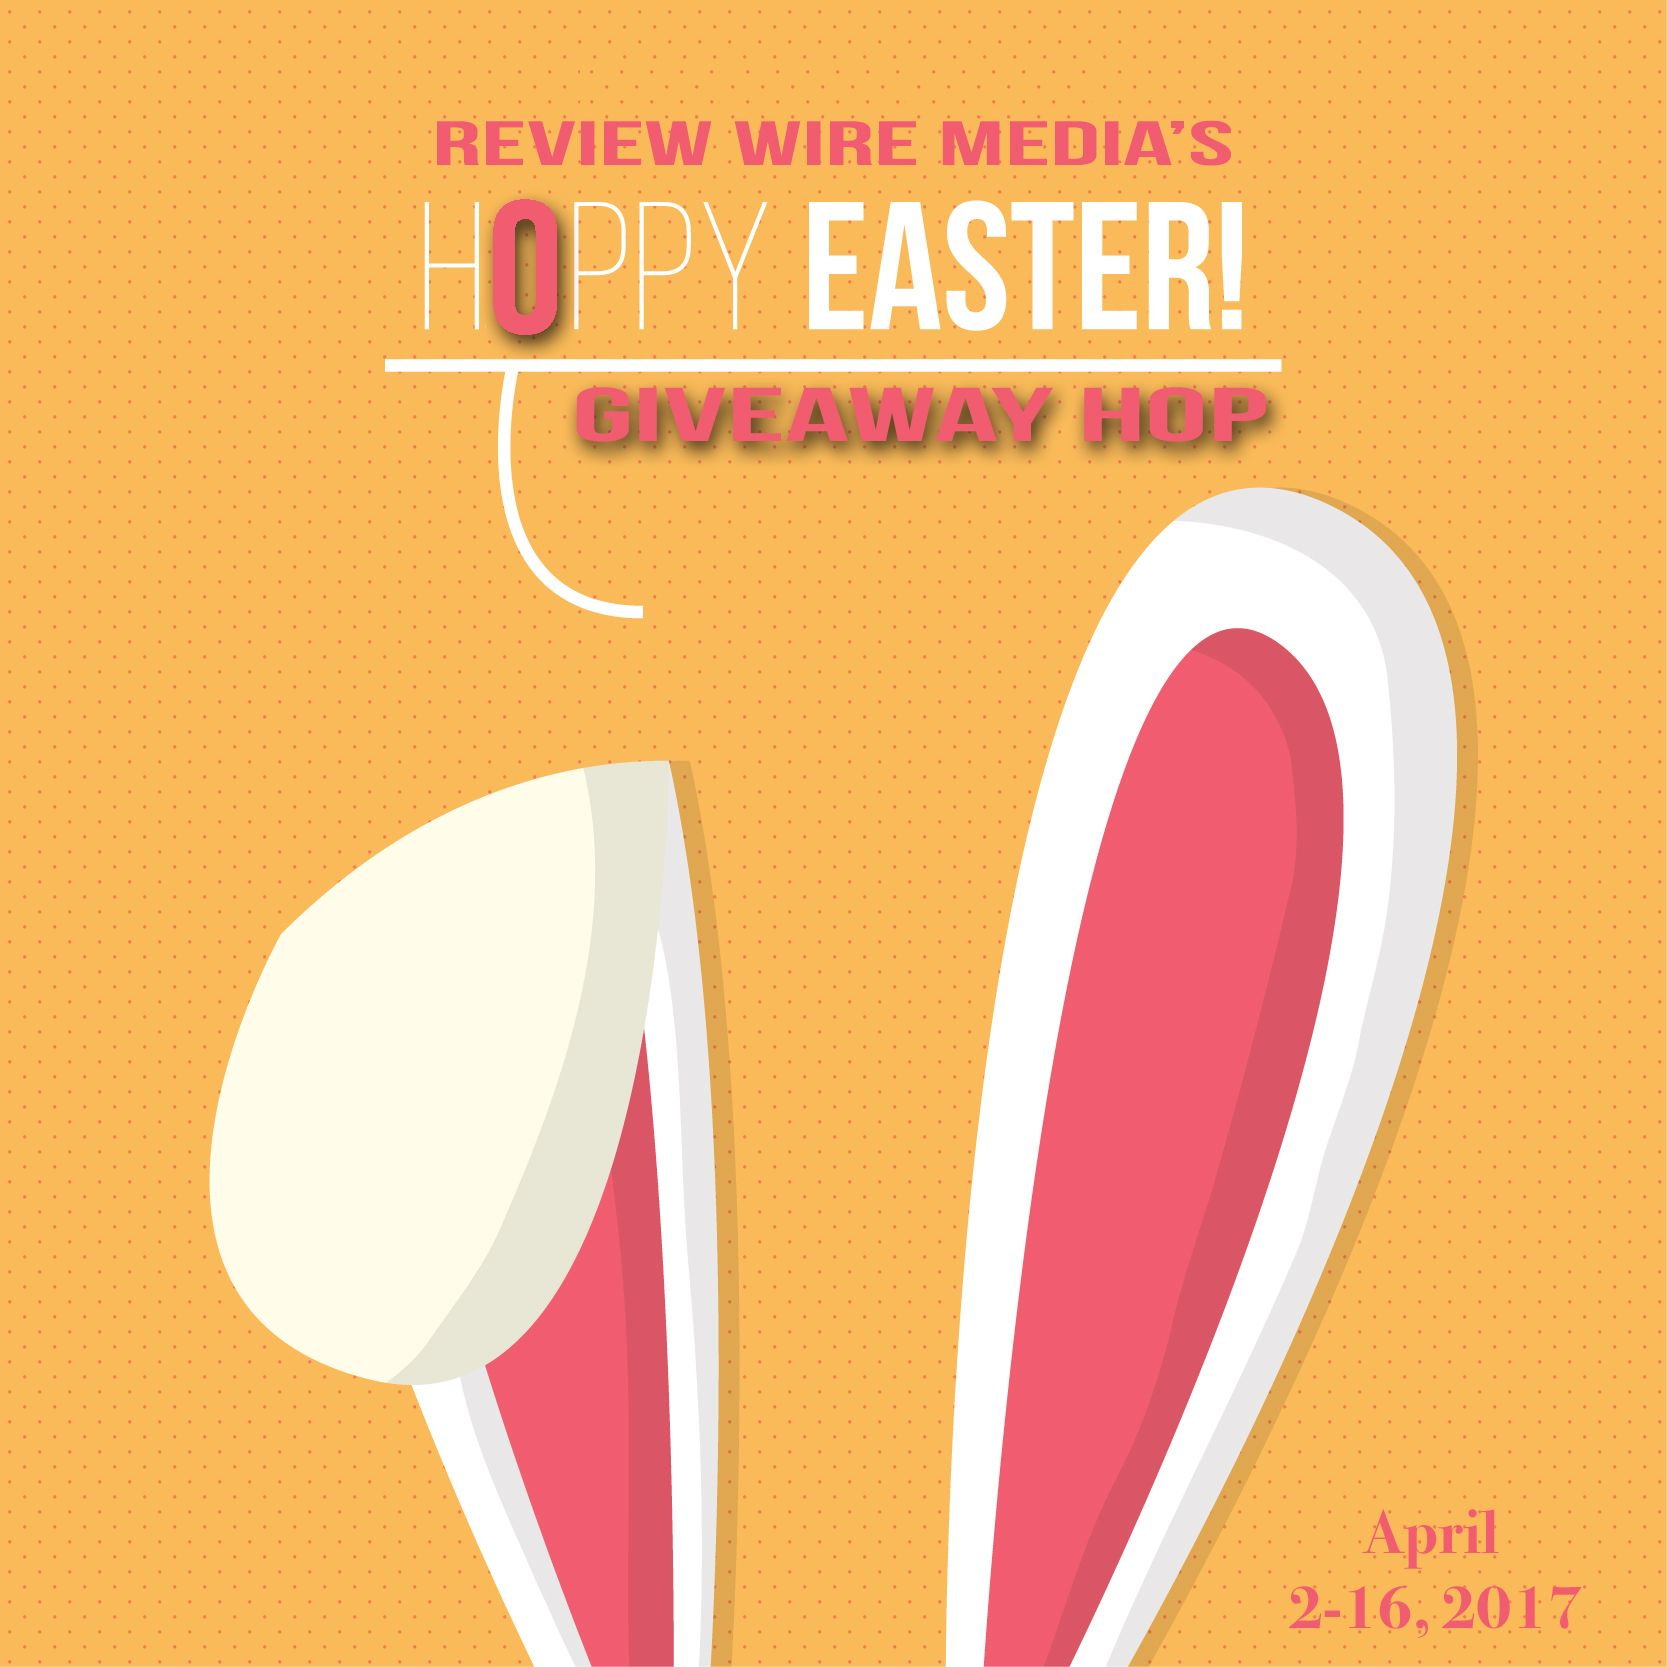 For this hoppy hop easter giveaway i have two copies of heidi to giveaway win a 4 tickets to the gazillion bubble show in nyc in the hoppy easter giveaway hop negle Images